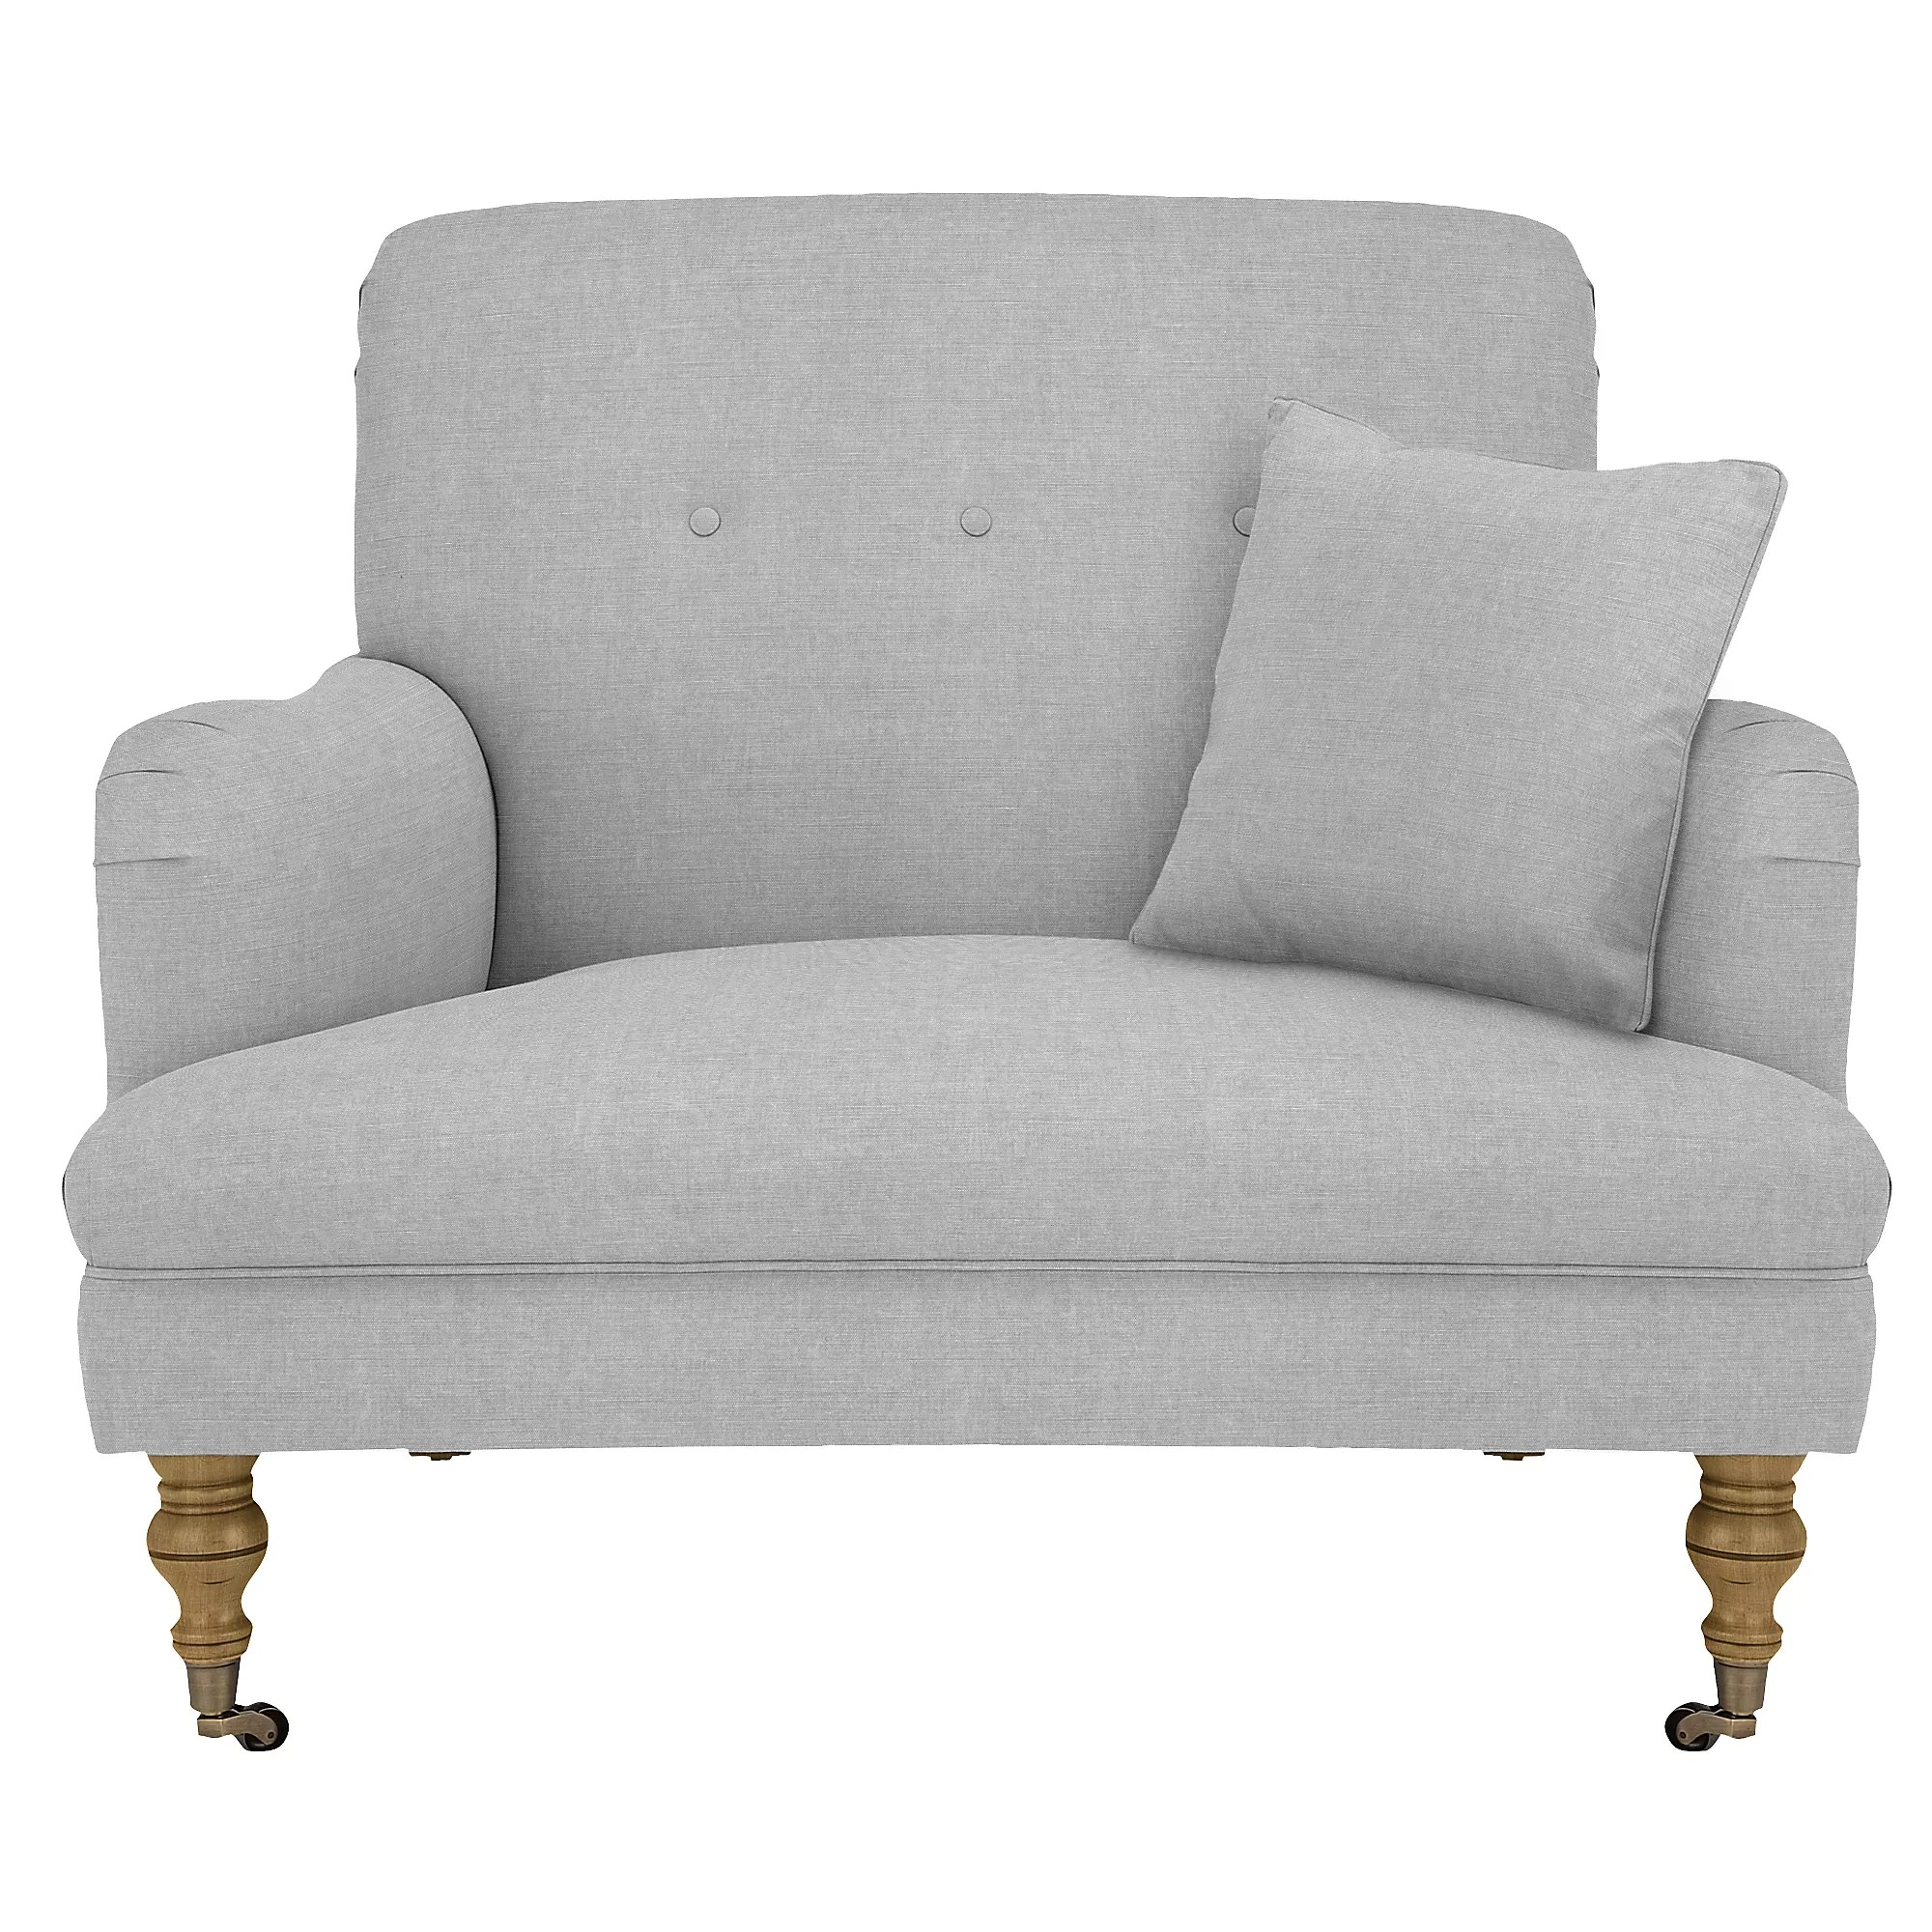 Made Quentin Sofa John Lewis Howard Snuggler